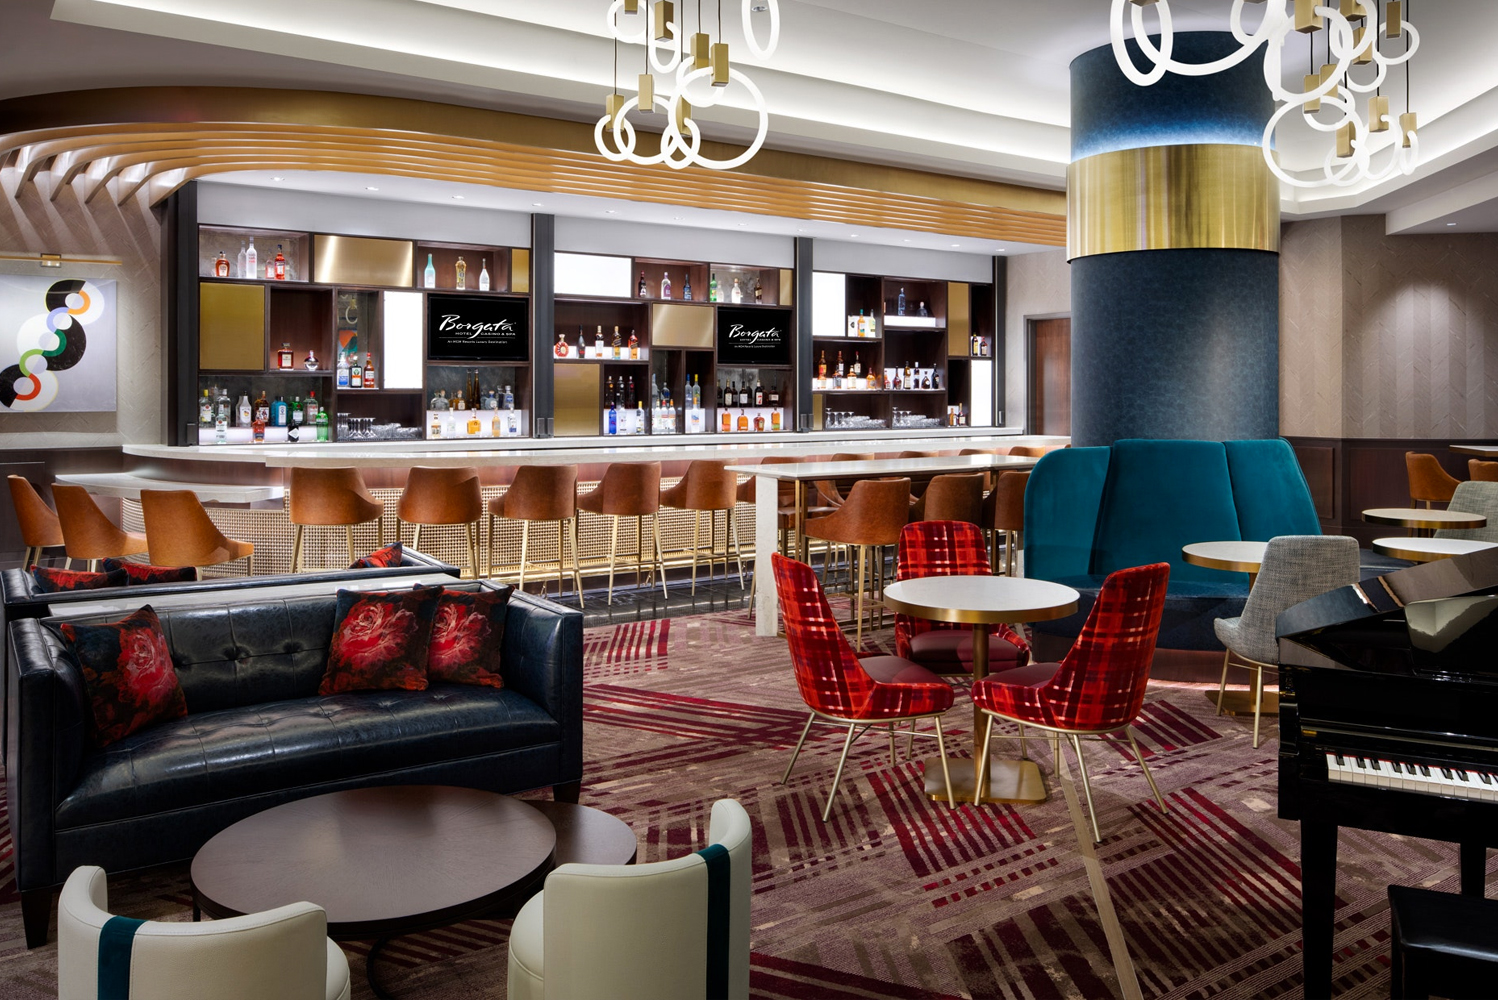 Scheduled for completion this September, the all-new lobby bar and complementary VIP check-in will see the addition of three large-screen televisions, coffee service and a curated new menu. Photo credit: Avenue Design